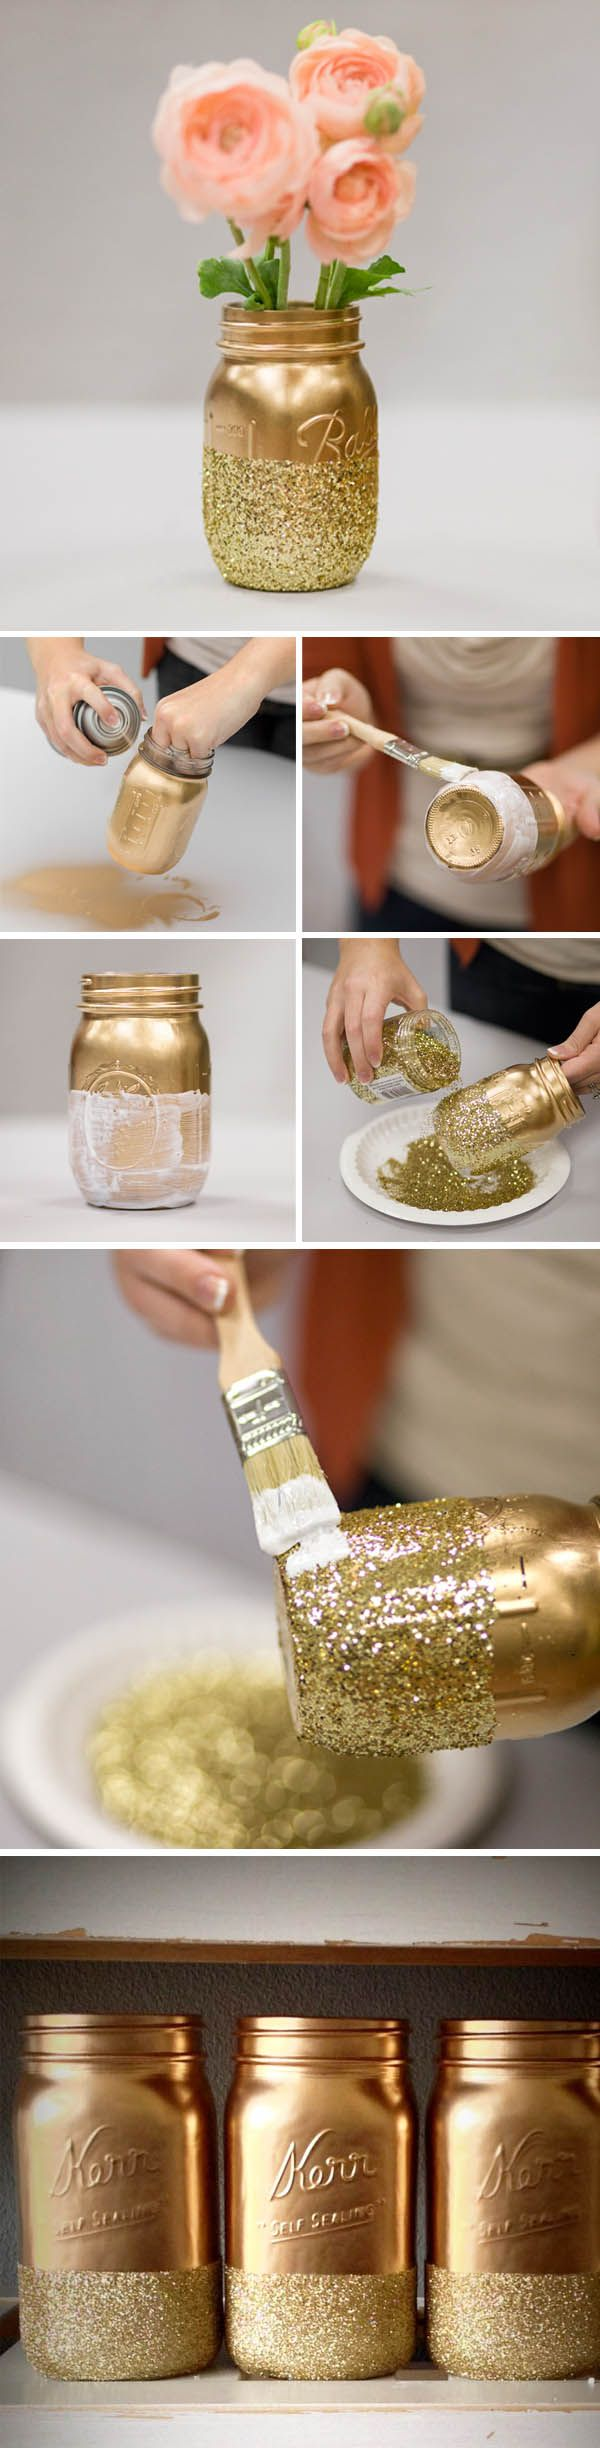 Ten Inspirational DIY Mason Jar Ideas for